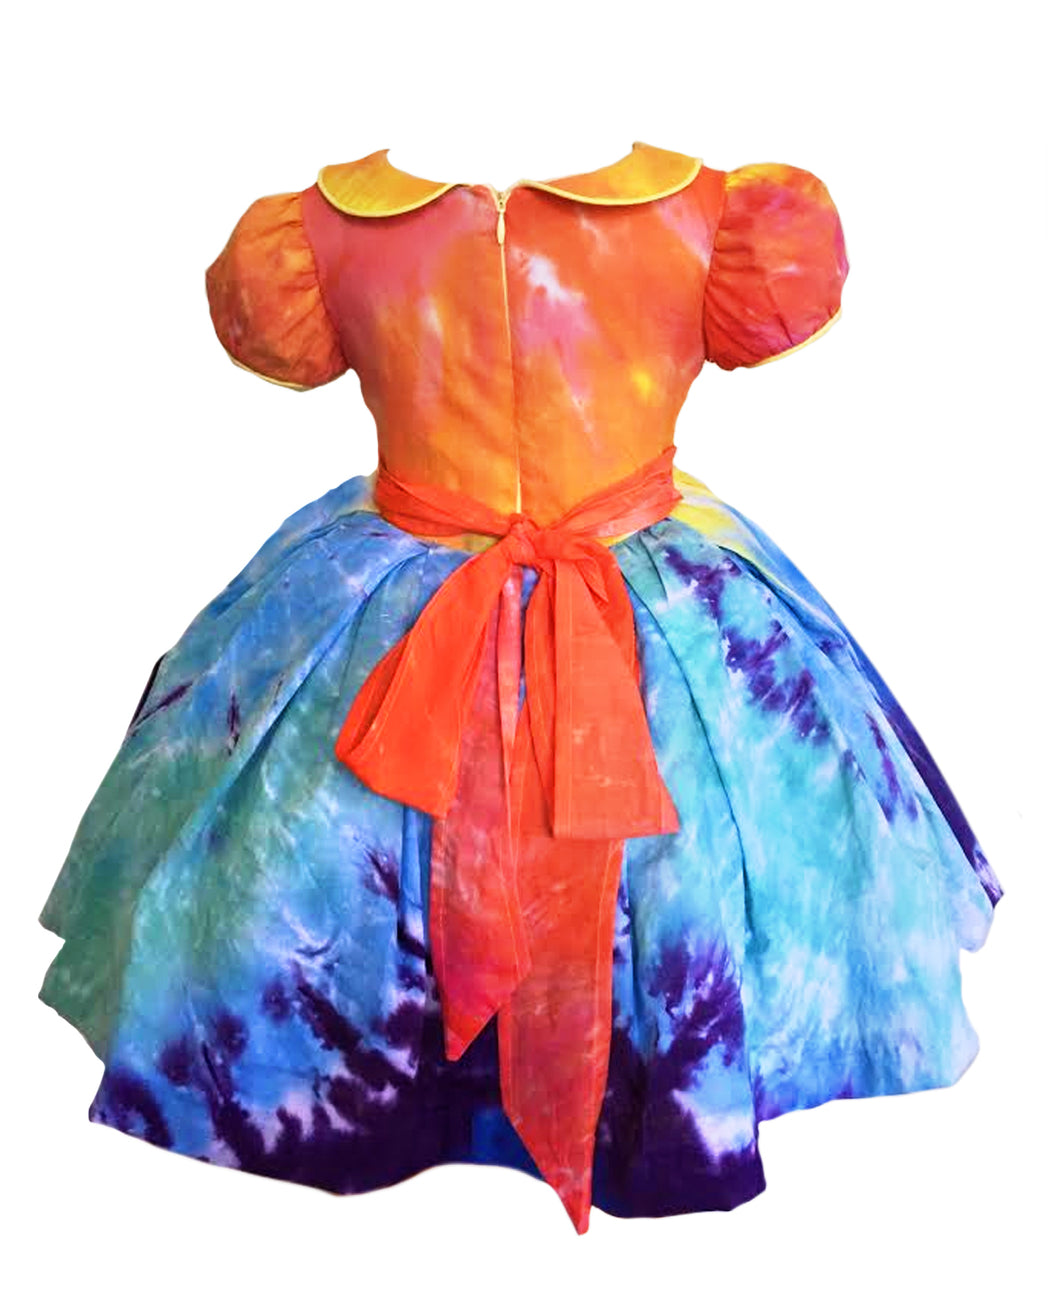 Doloris Petunia Tie Dye Dress The Naomi Limited Edition